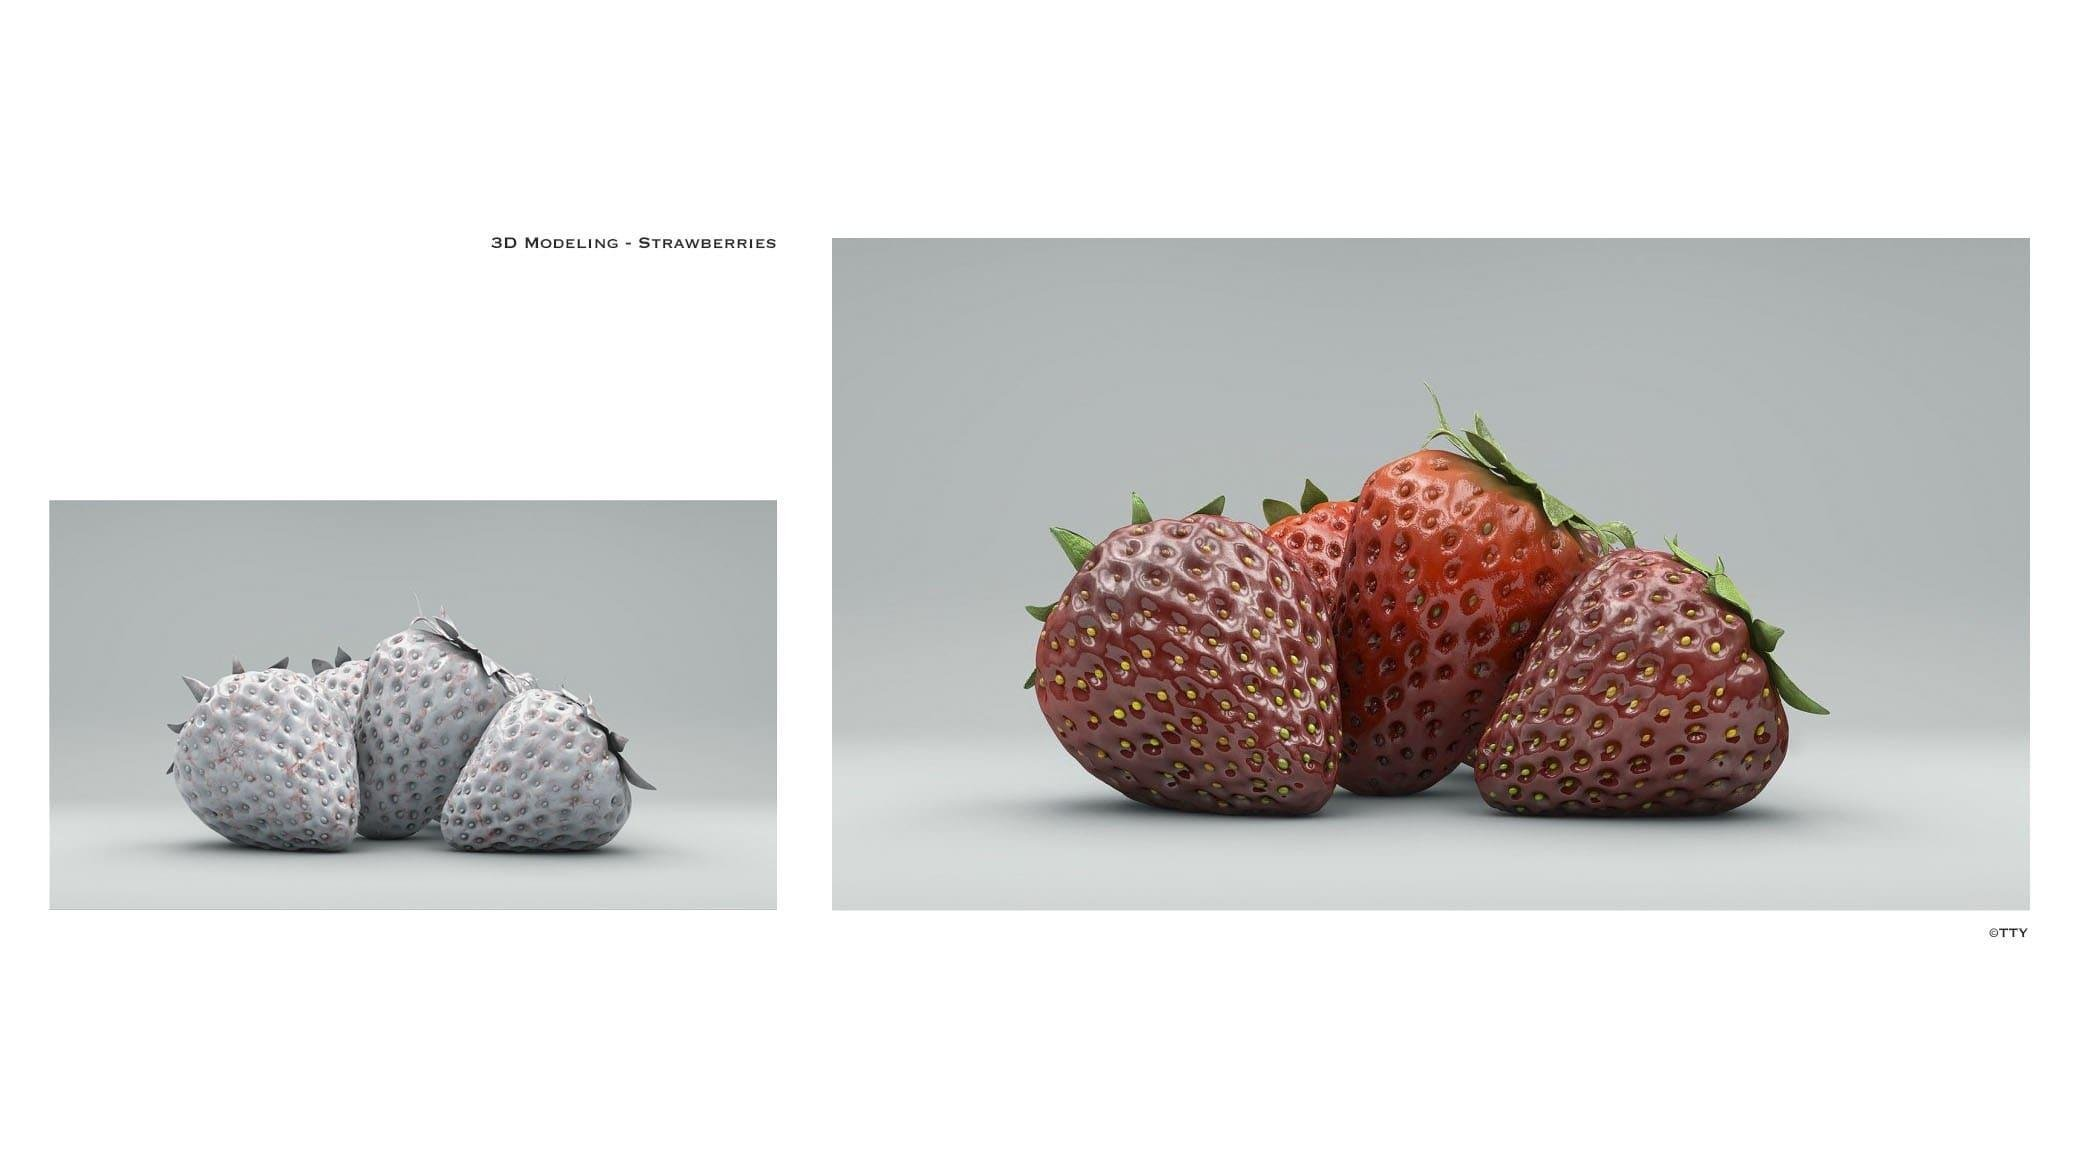 original_TTY-3D-Modeling-Strawberries.jpg